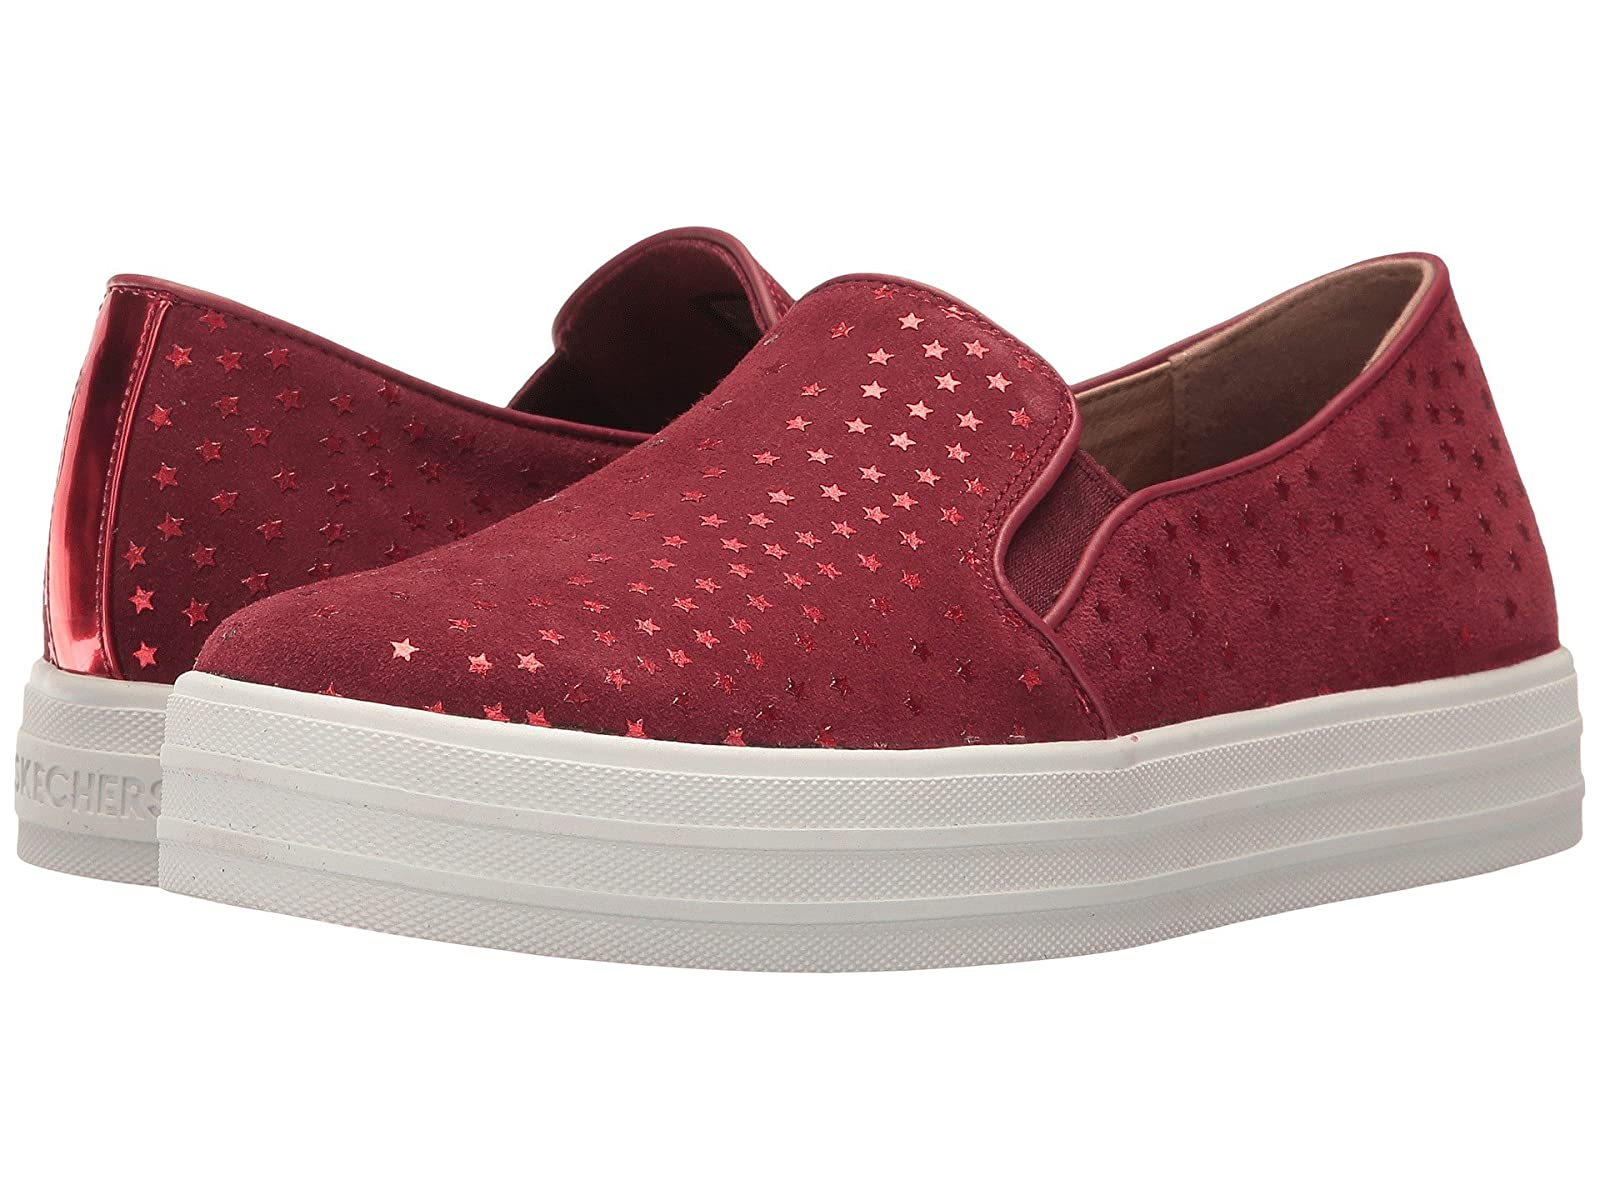 SKECHERS Double Up - GALACTICAAtmospheric grades have affordable shoes